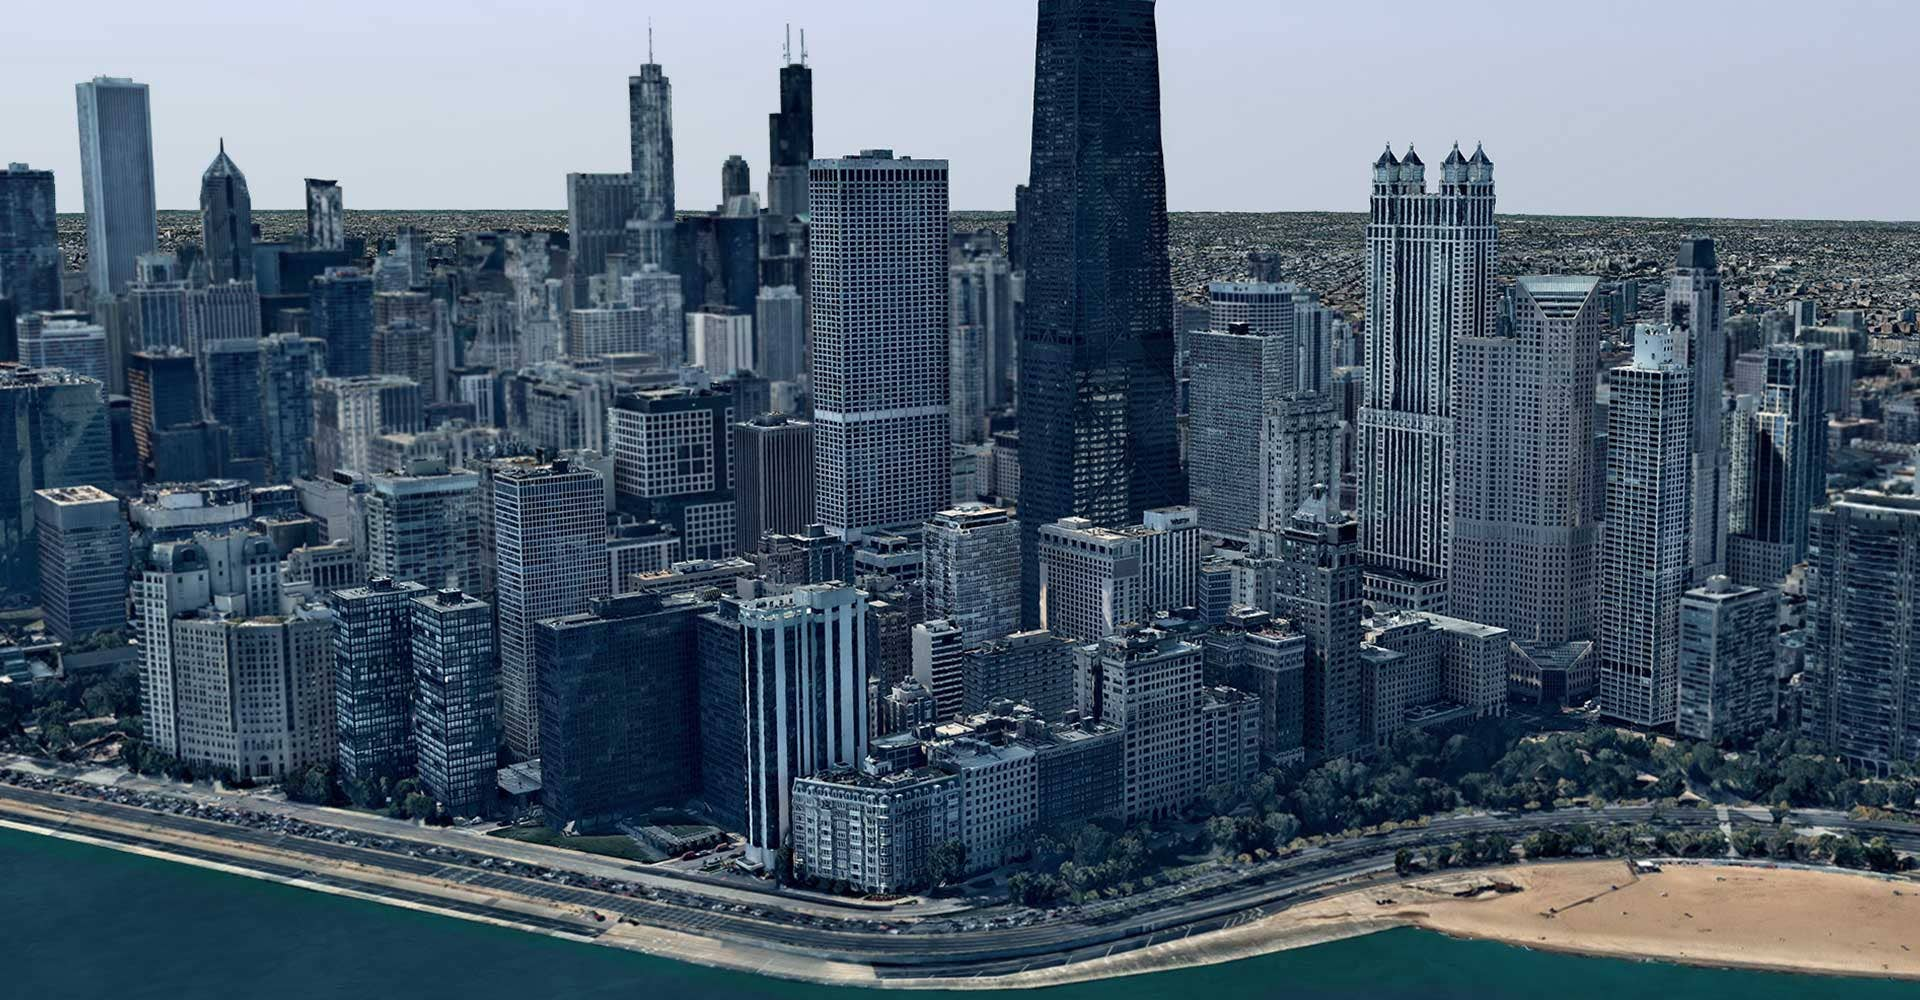 3D aerial map and data of Chicago, IL skyline